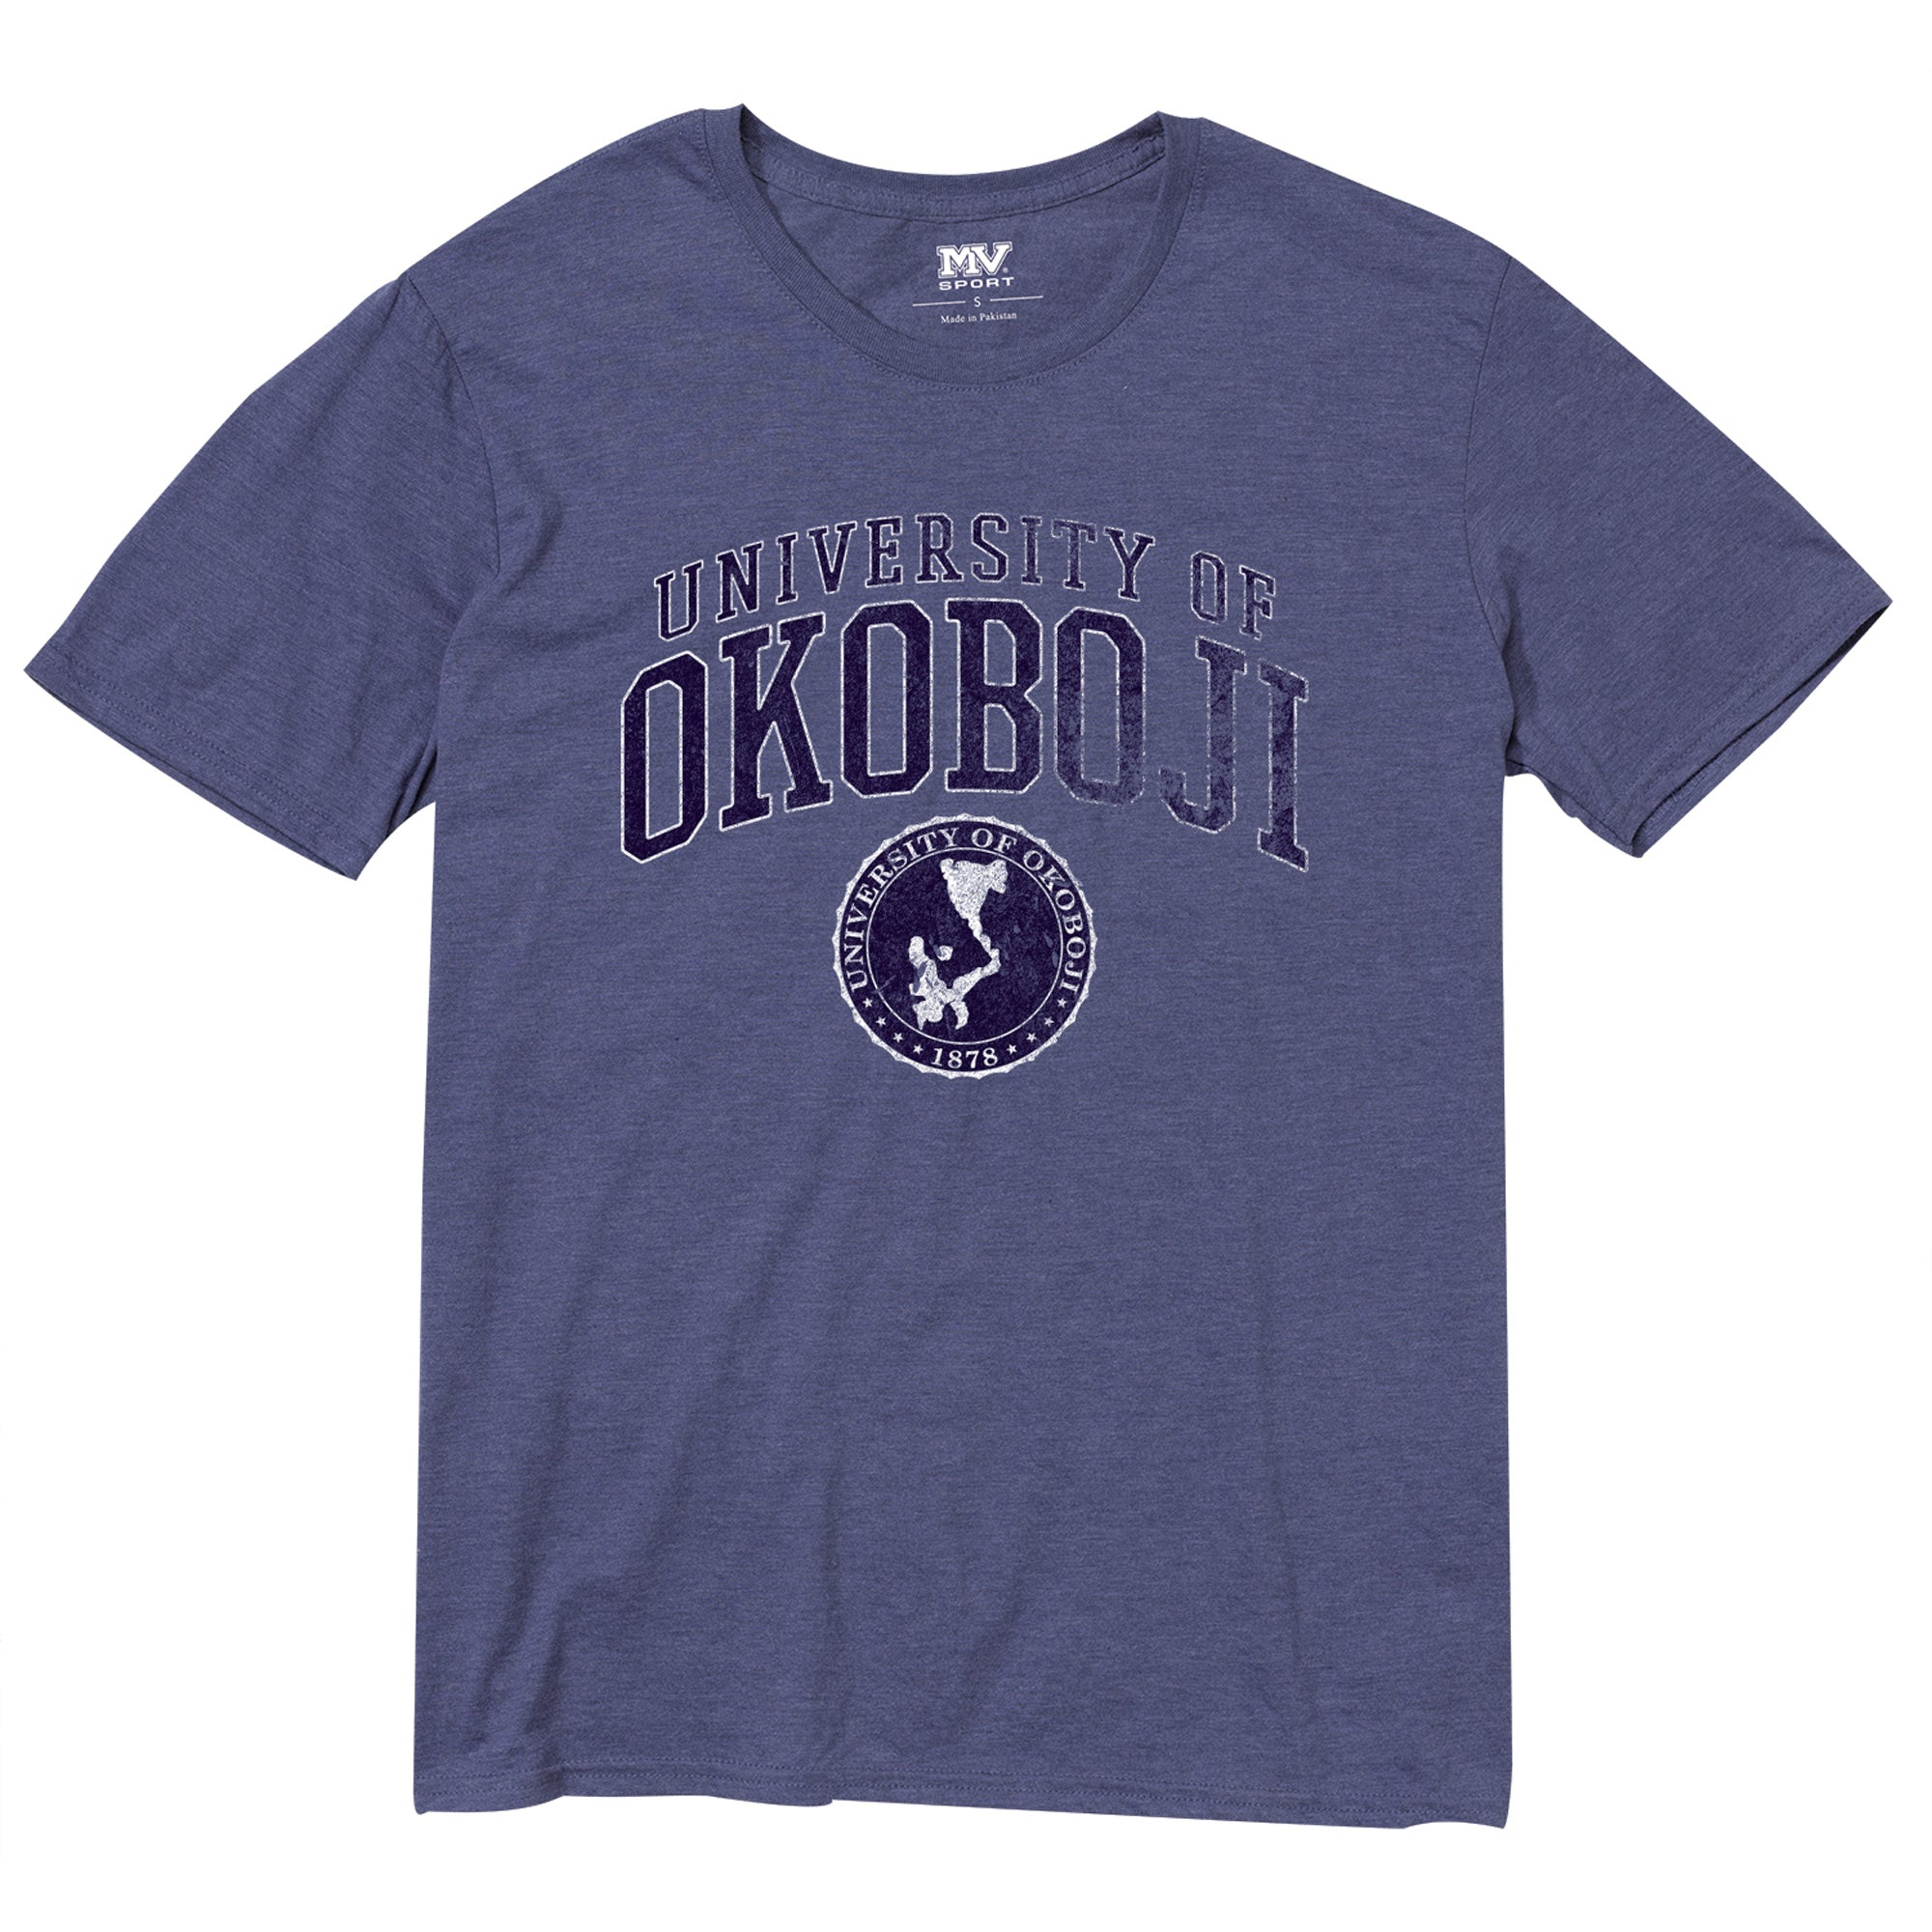 University of Okoboji Seasoned Tri-Blend Tee - Dark Heather Royal